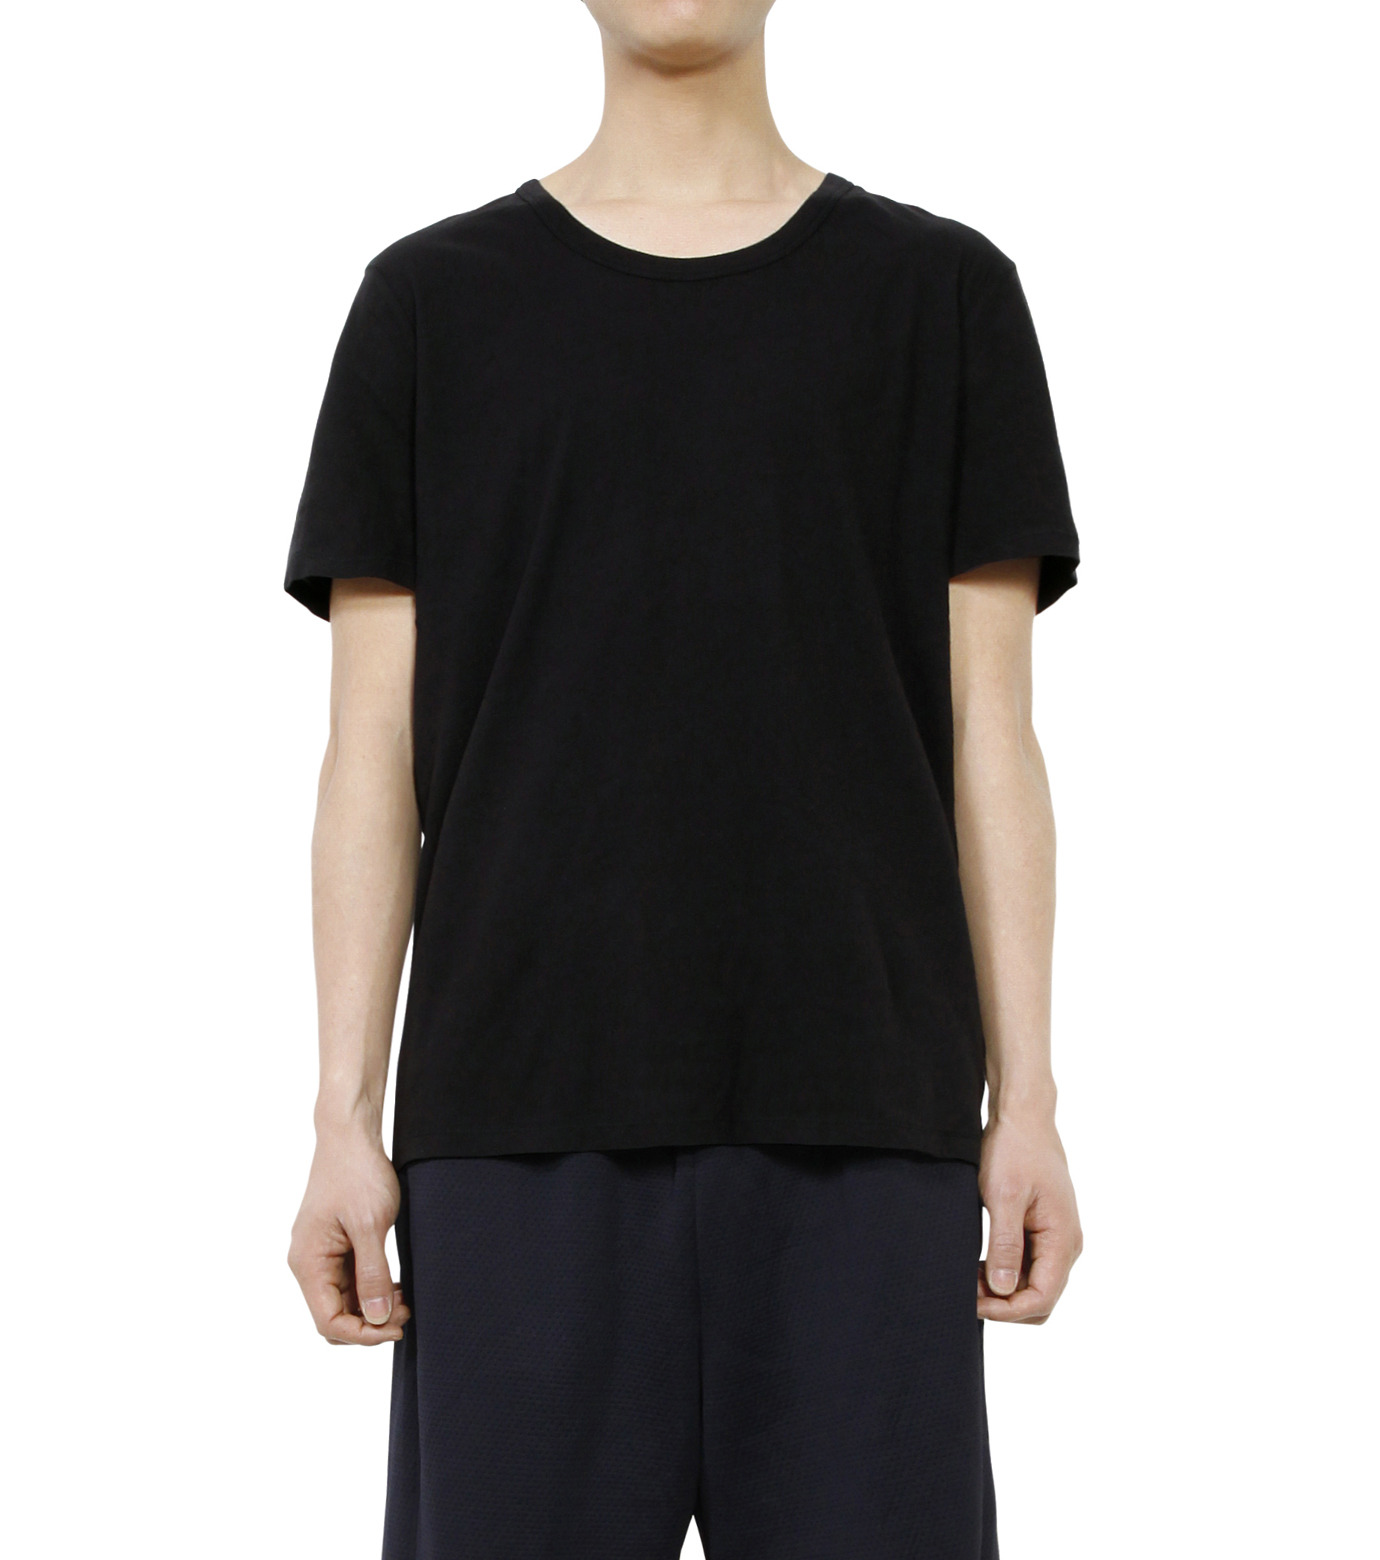 T by Alexander Wang(ティーバイ アレキサンダーワン)のBasic T-BLACK(カットソー/cut and sewn)-500201C-13 拡大詳細画像1